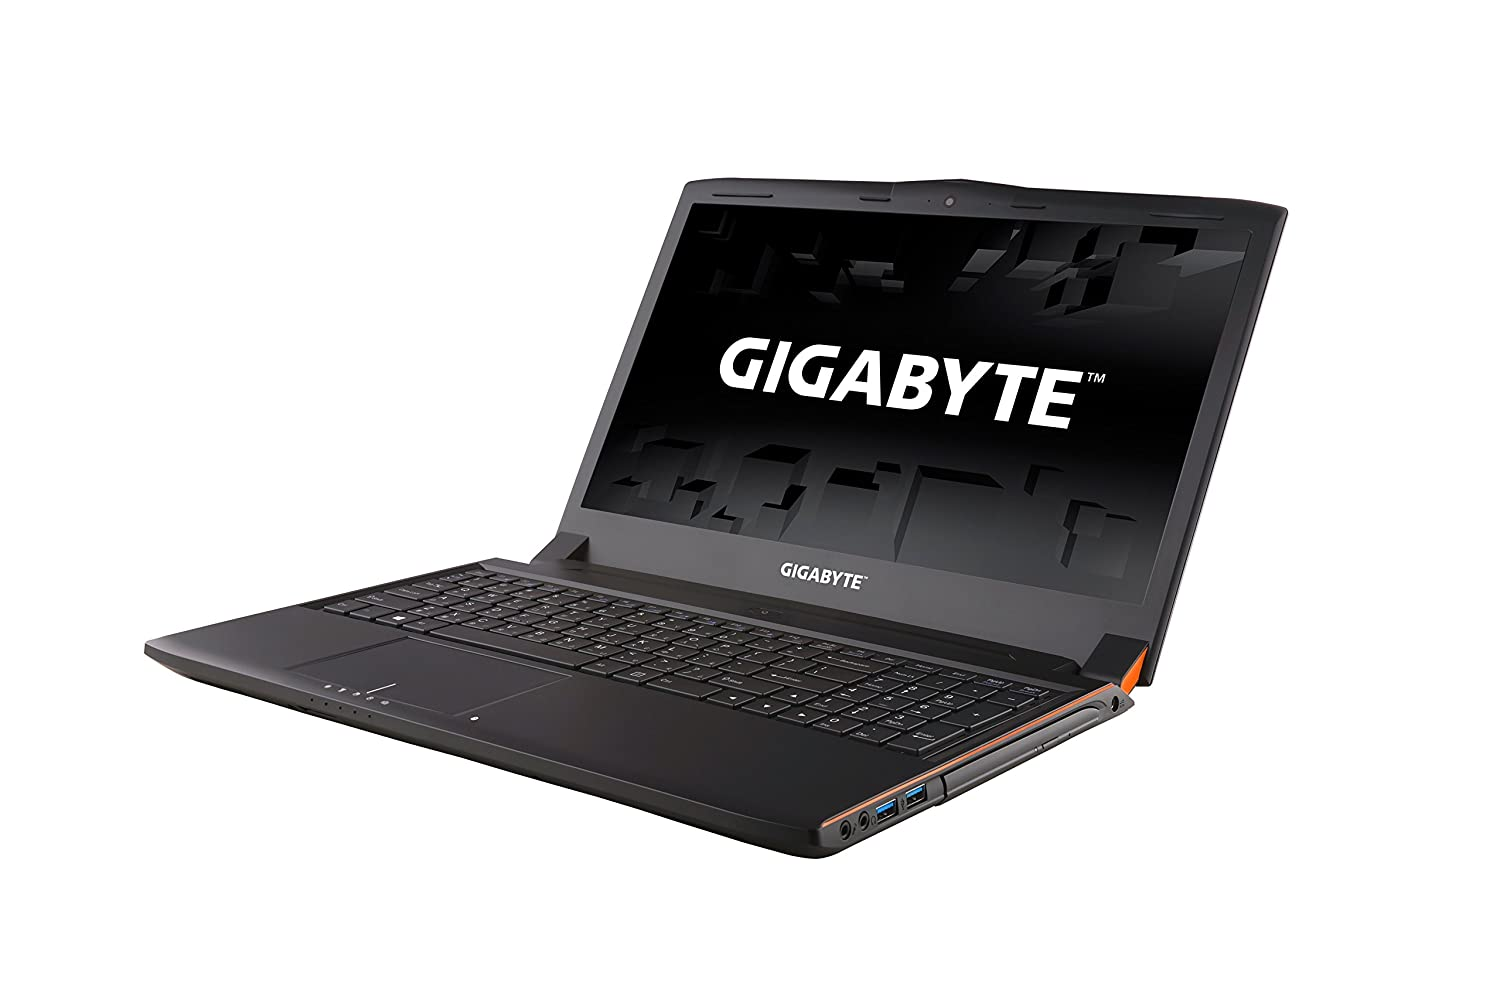 gaming laptop under 1200